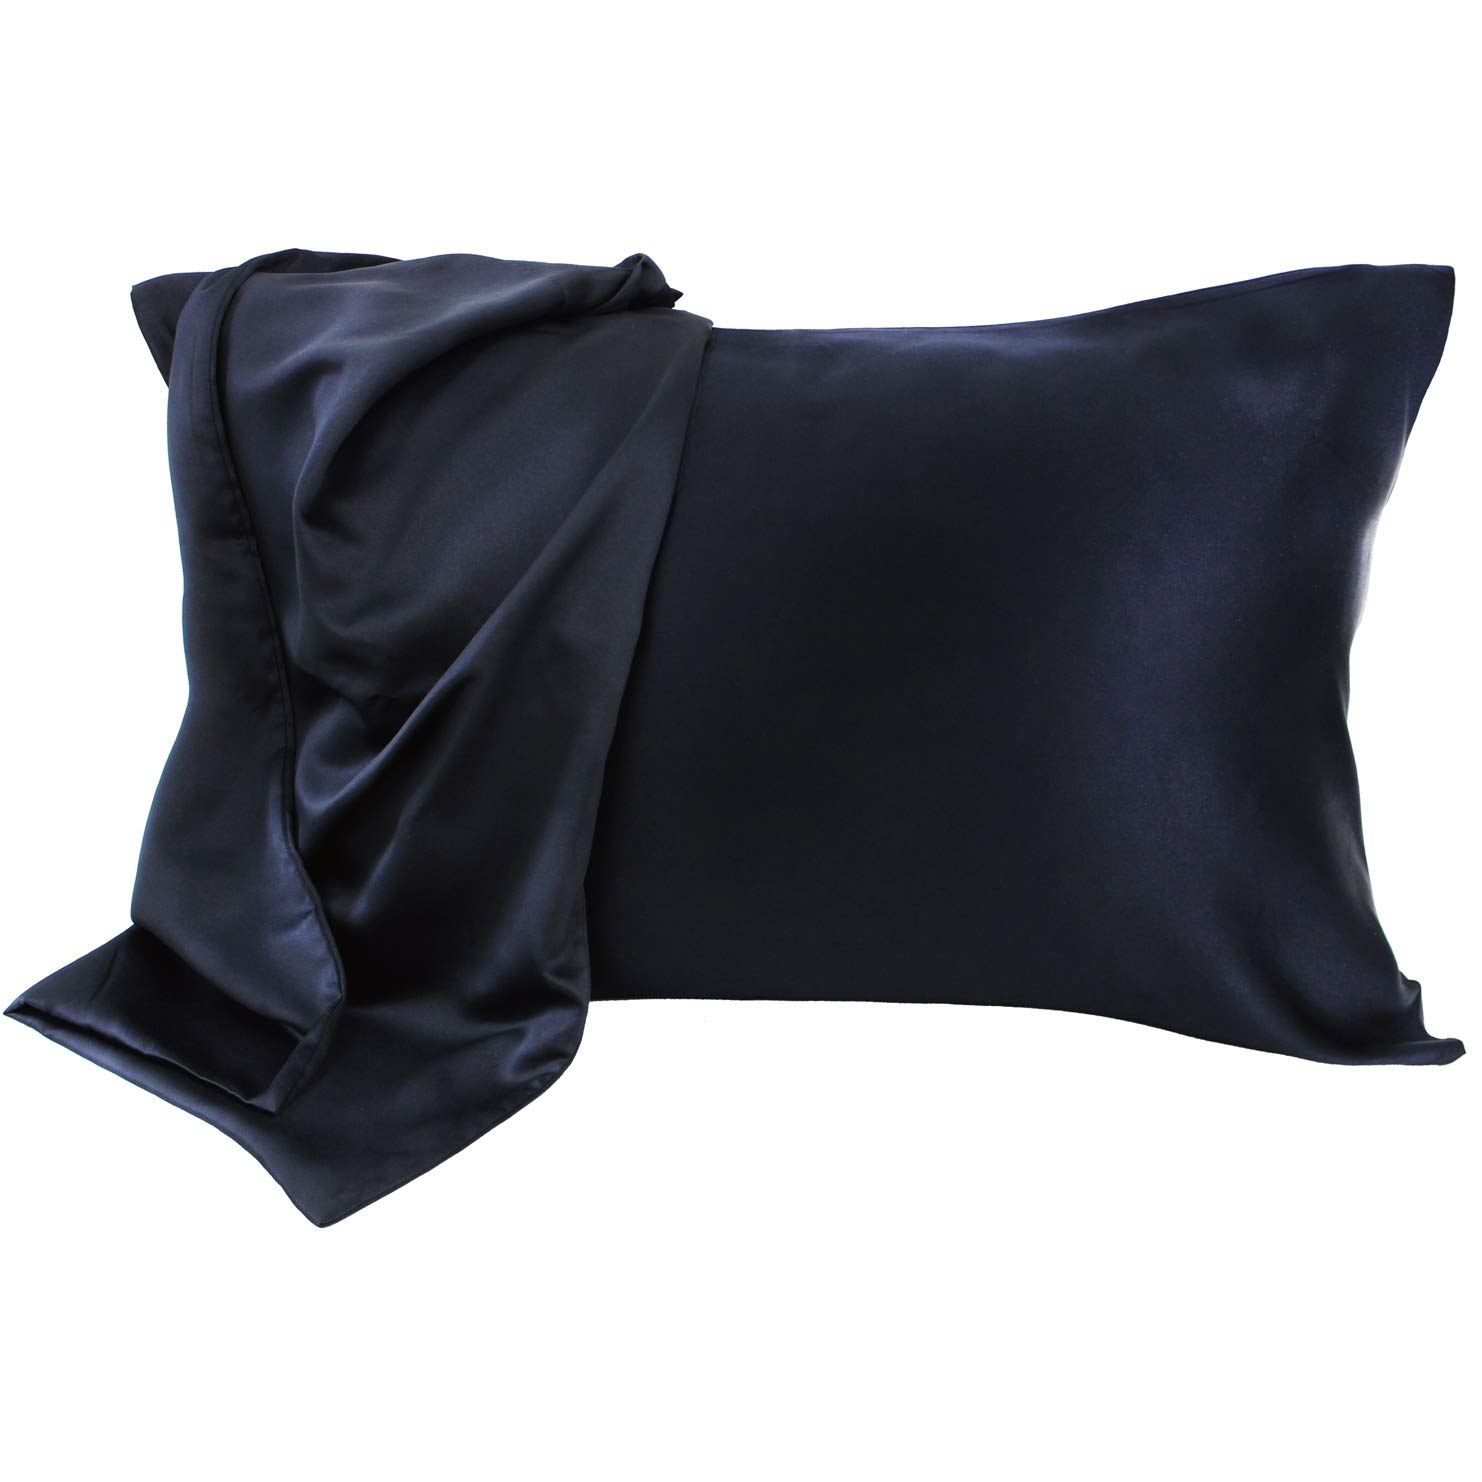 Sleep Zone Satin Pillowcases Cooling Set of 2 for Hair and Skin Standard/Queen 20x30 Pillow Cover (Queen, Black)